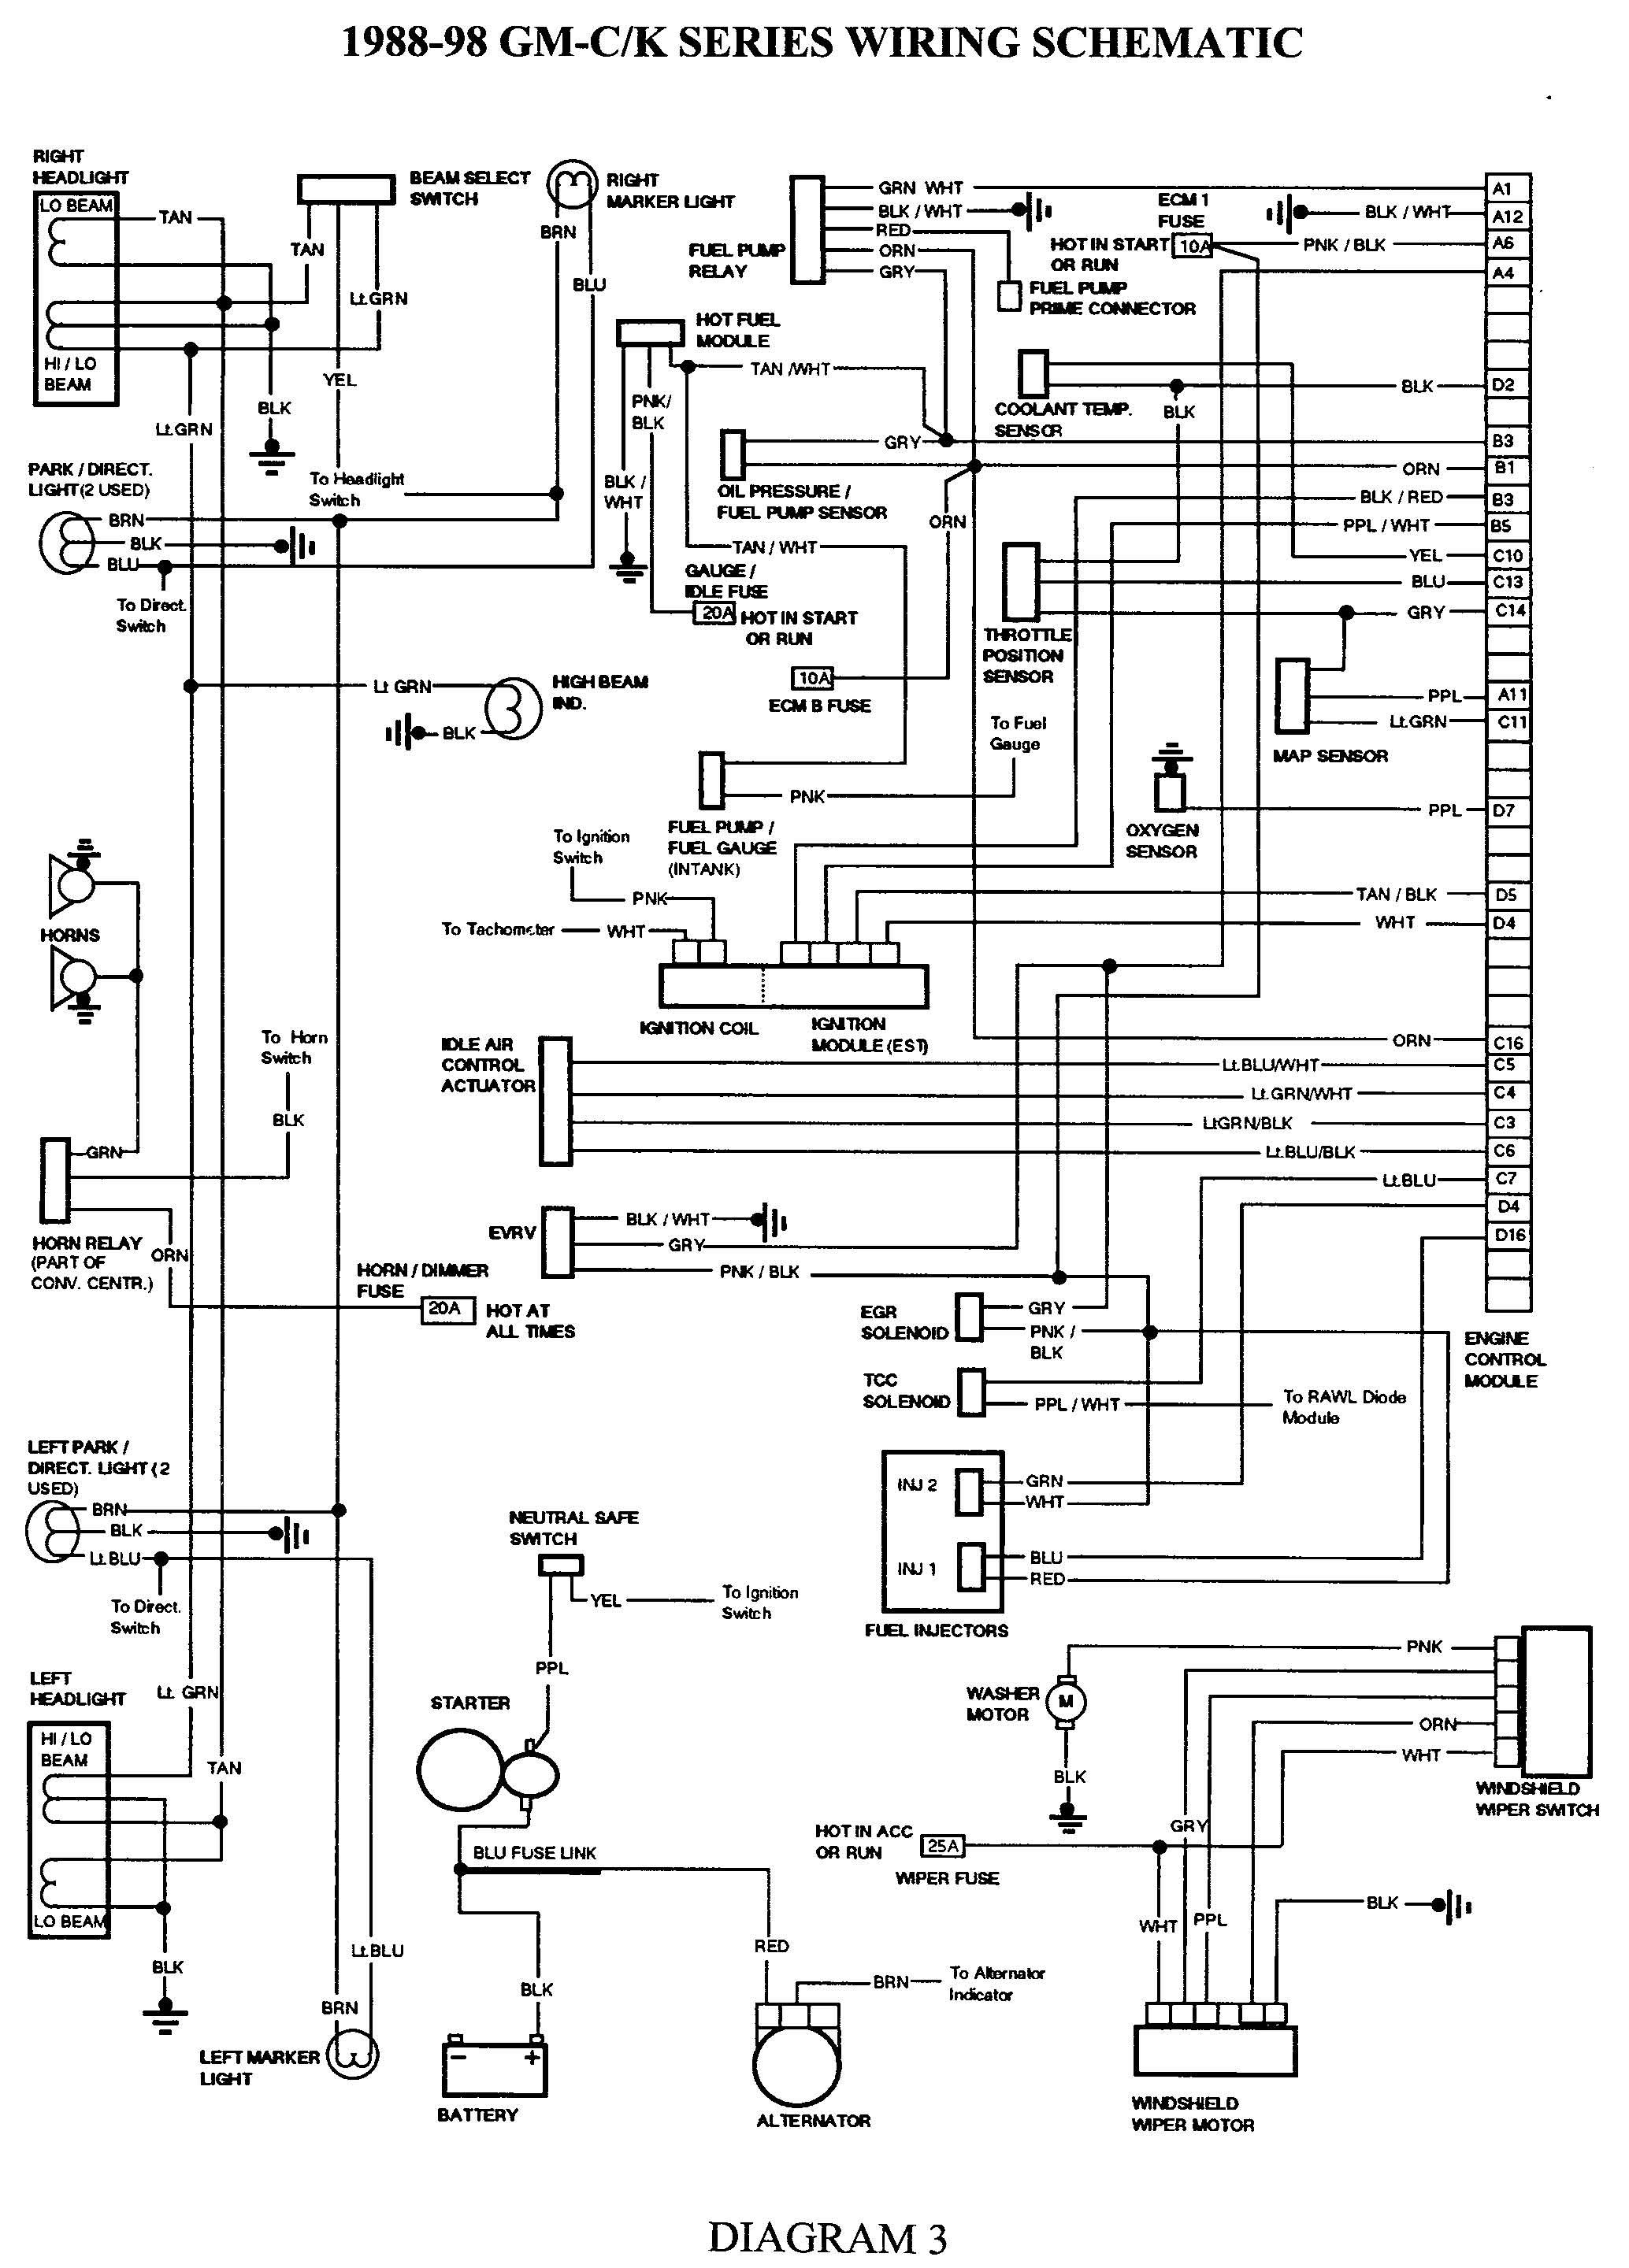 gm wiring schematics detailed schematics diagram rh keyplusrubber com Washing Free Download Schematic Diagram Hatachi 55HDT79 Schematic Diagram Free Download